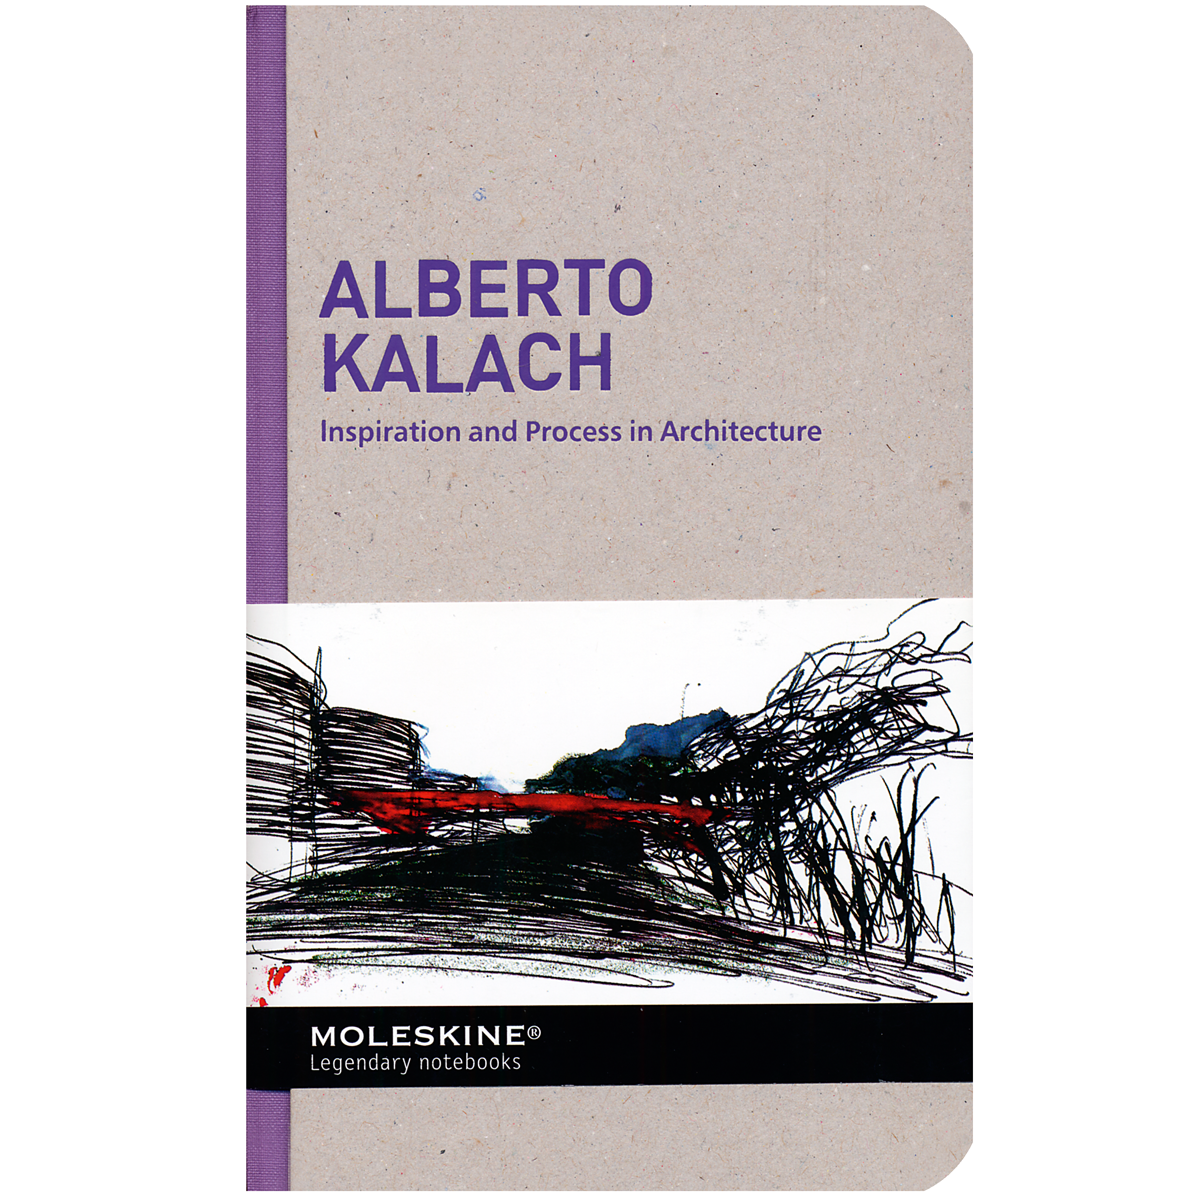 Inspiration and Process in Architecture: Alberto Kalach